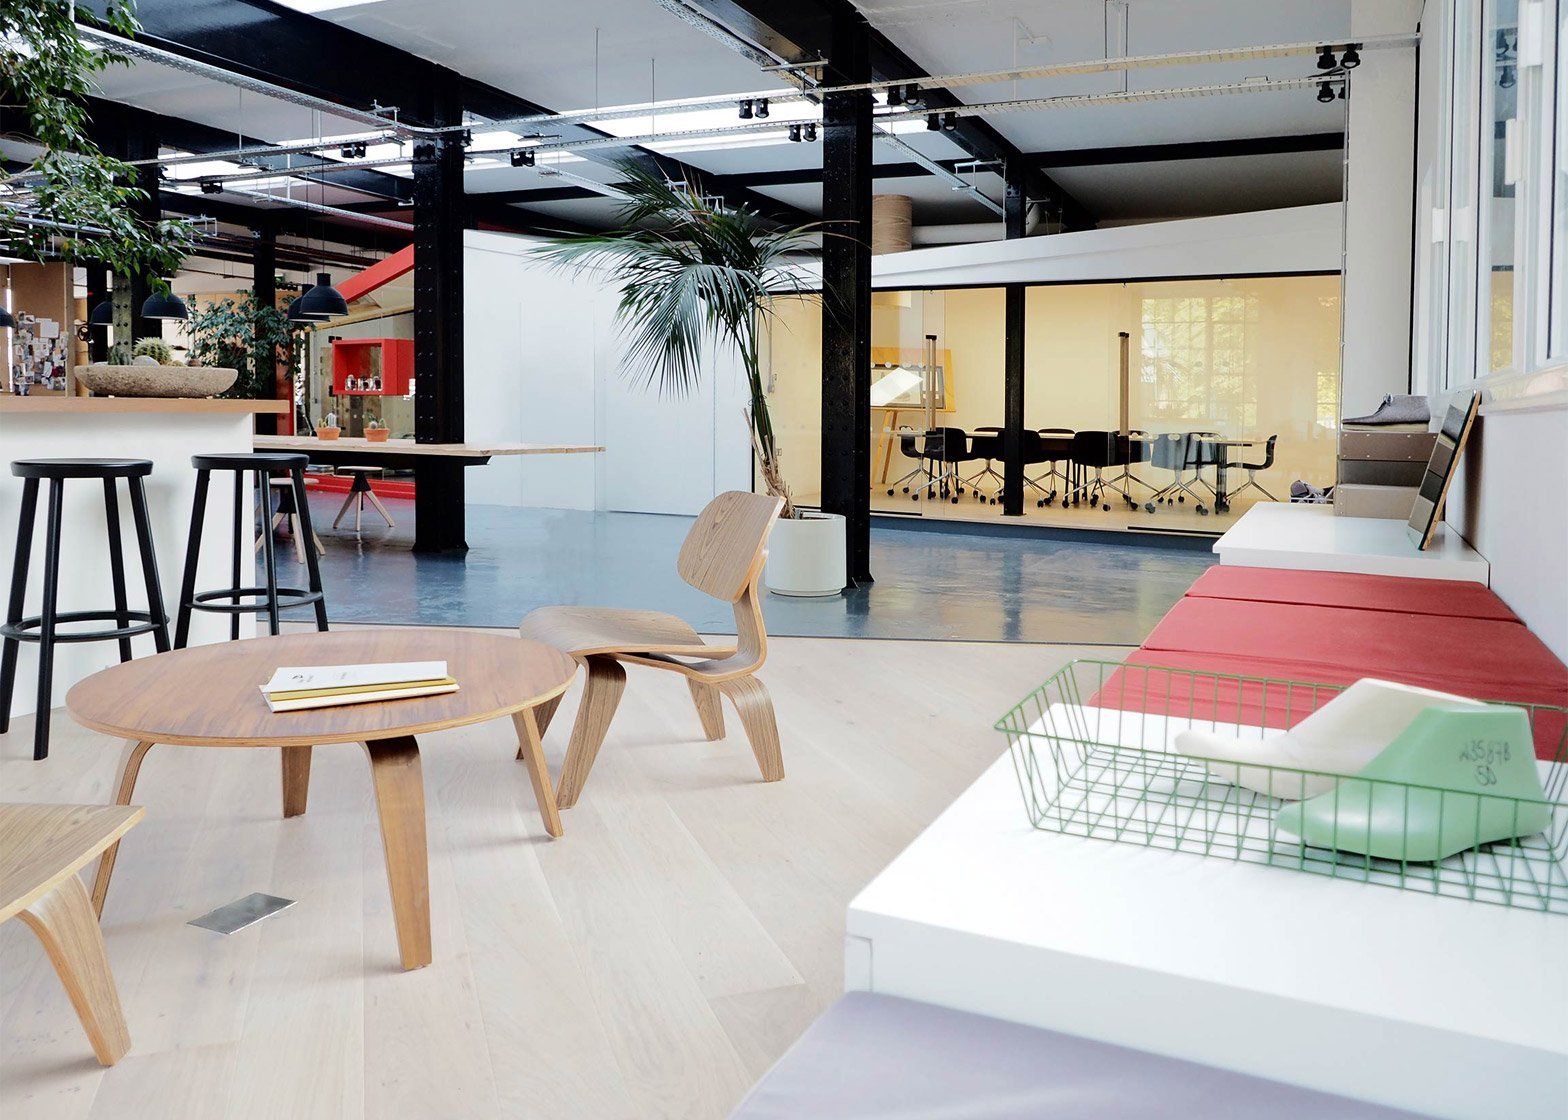 Clarks Originals design office by Arro studio